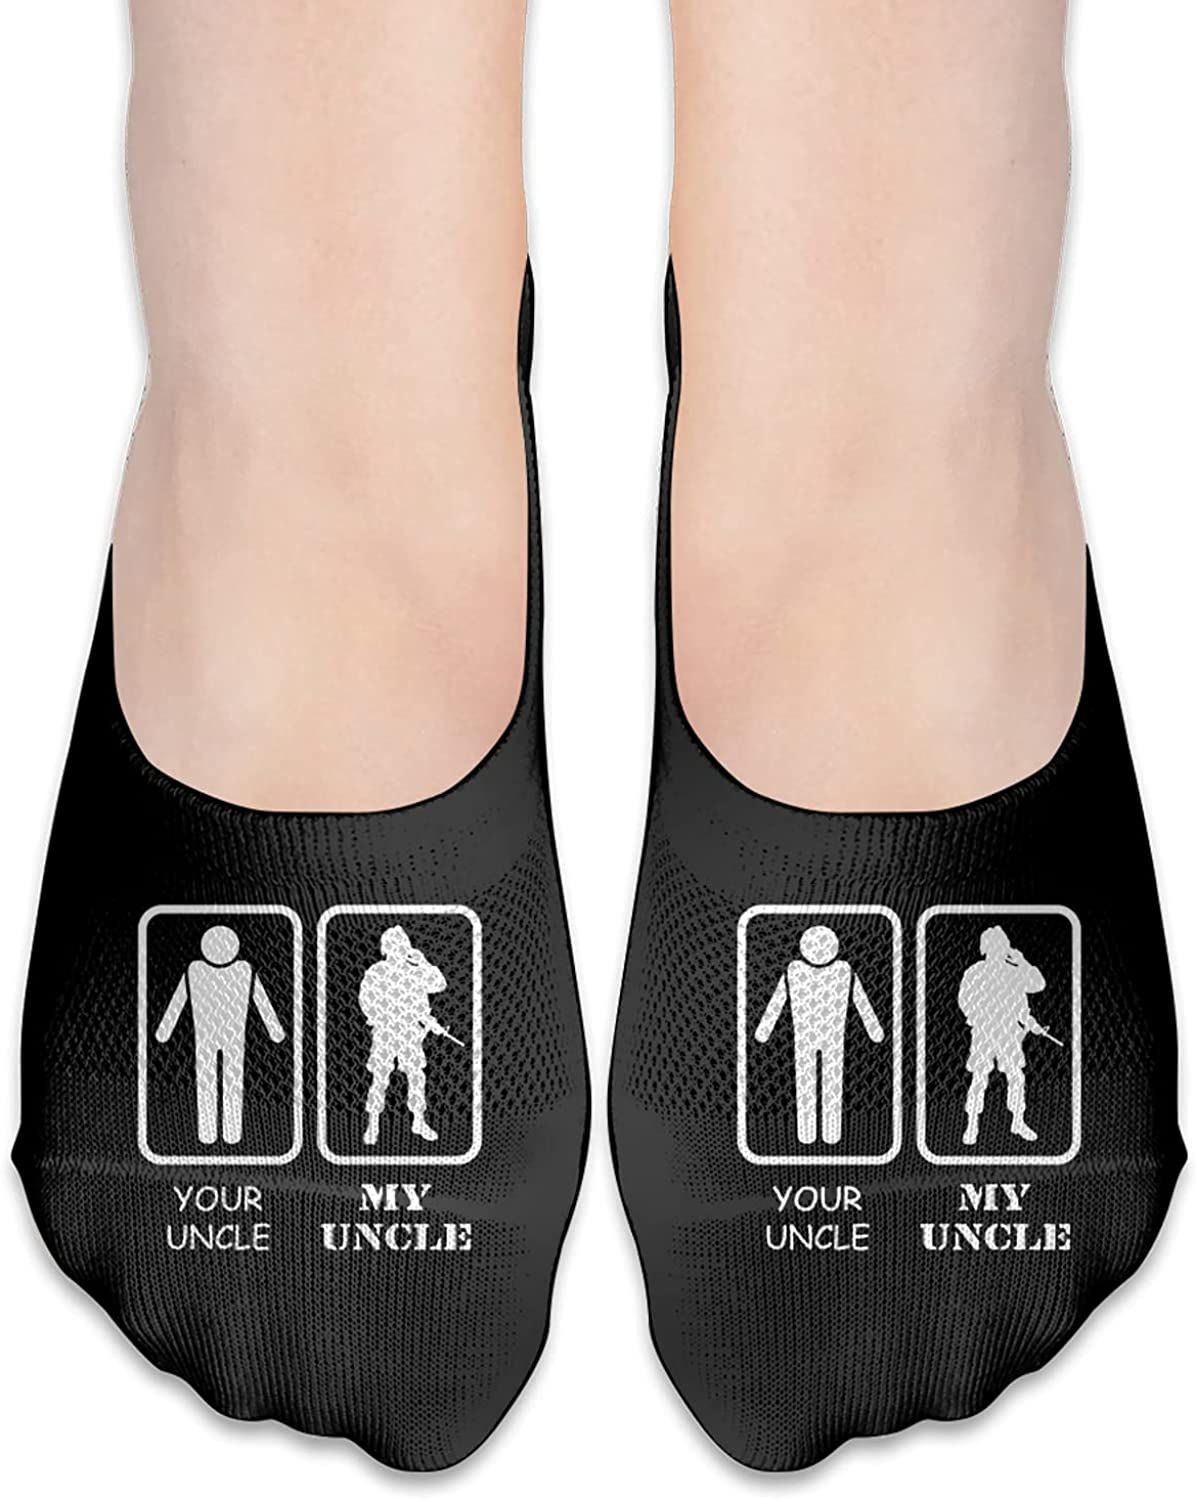 Your Uncle My Uncle Military Army Marine Uncle Men'S Woman'S No Show Socks Breathable Ankle Socks Invisible Liner Socks For Unisex